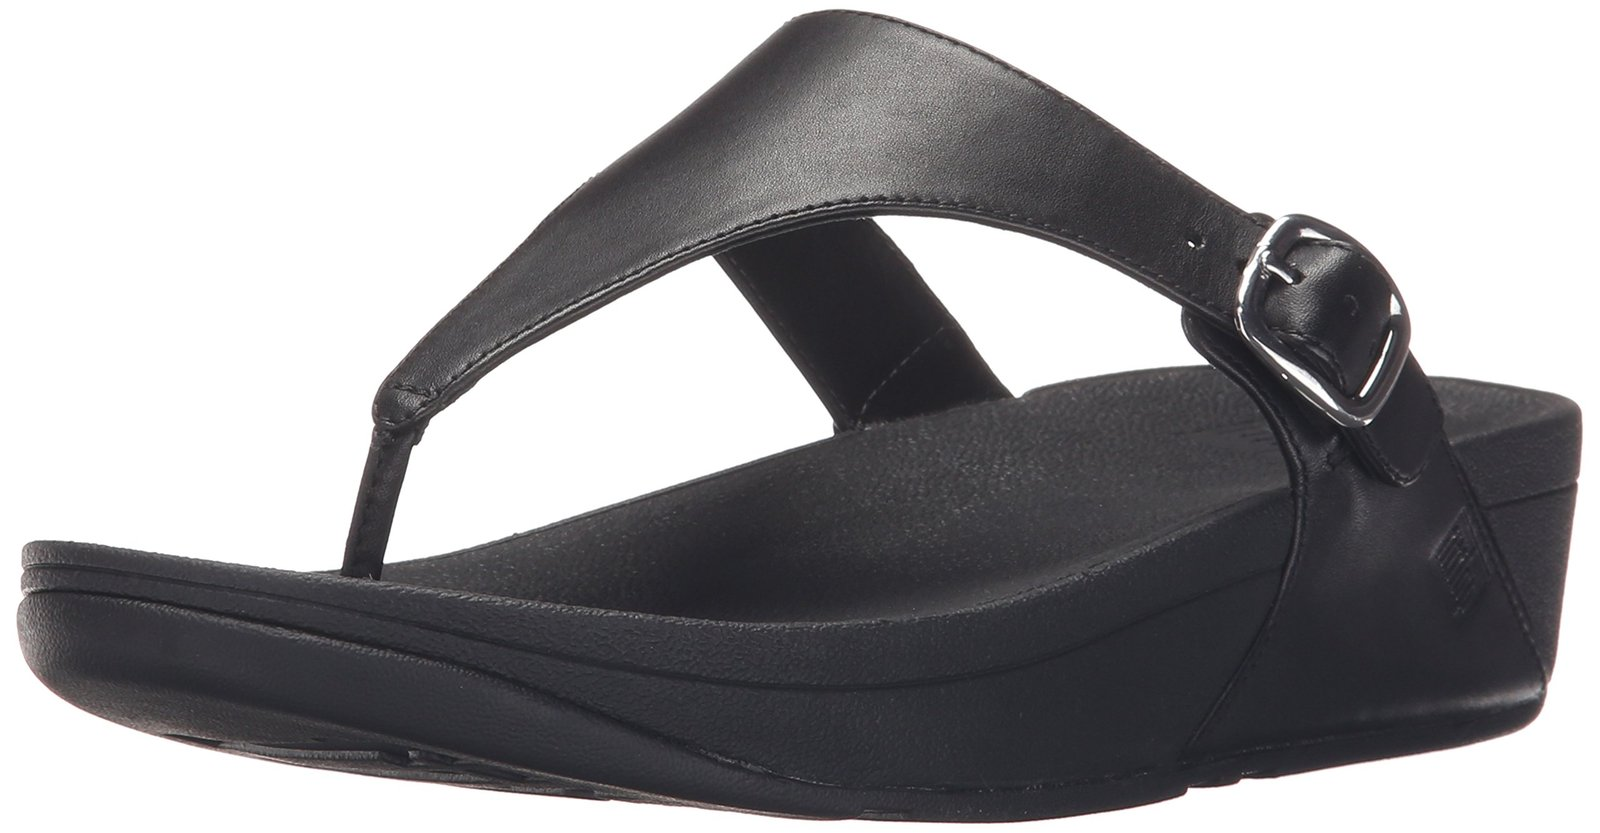 Fitflop Women's The Skinny Flip Flop, All Black, 8 M US